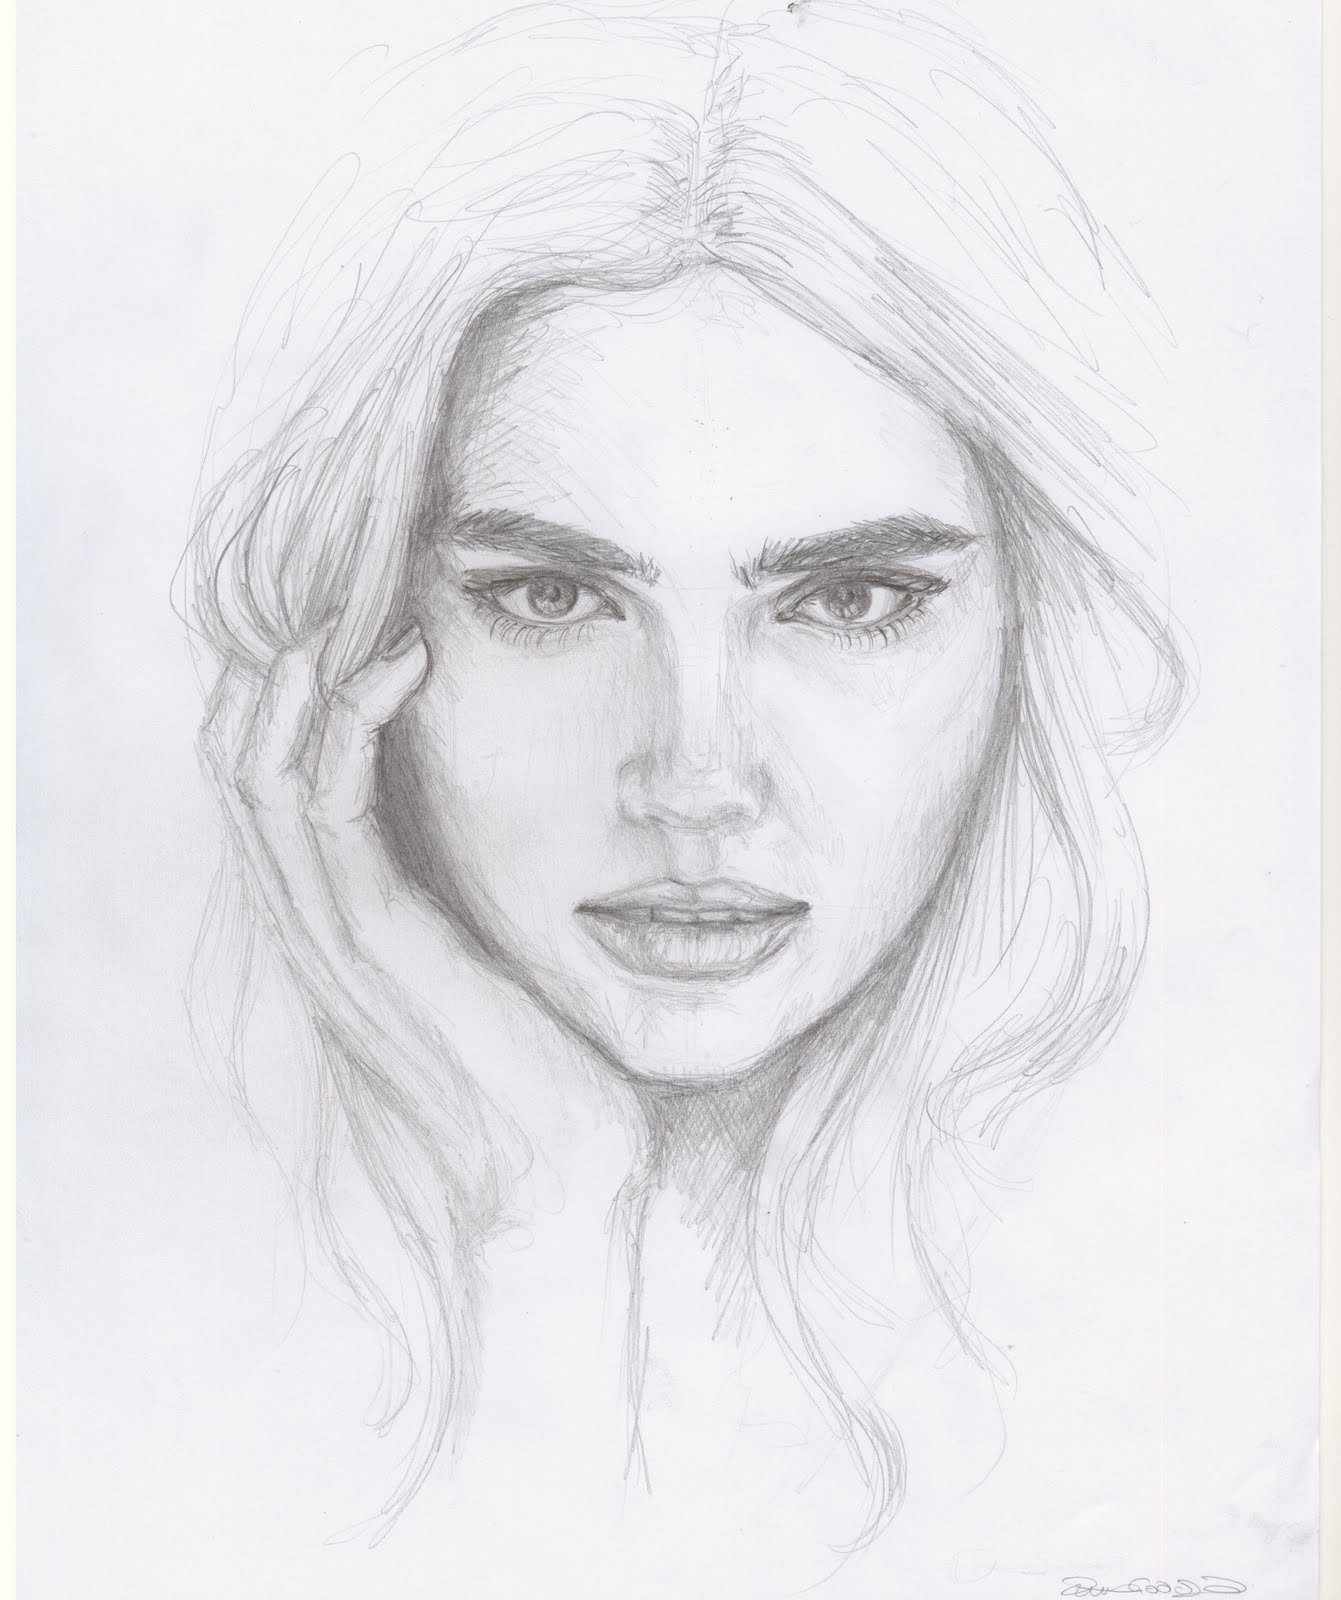 Drawn portrait simple pencil Of Design Drawing Sketch Drawing